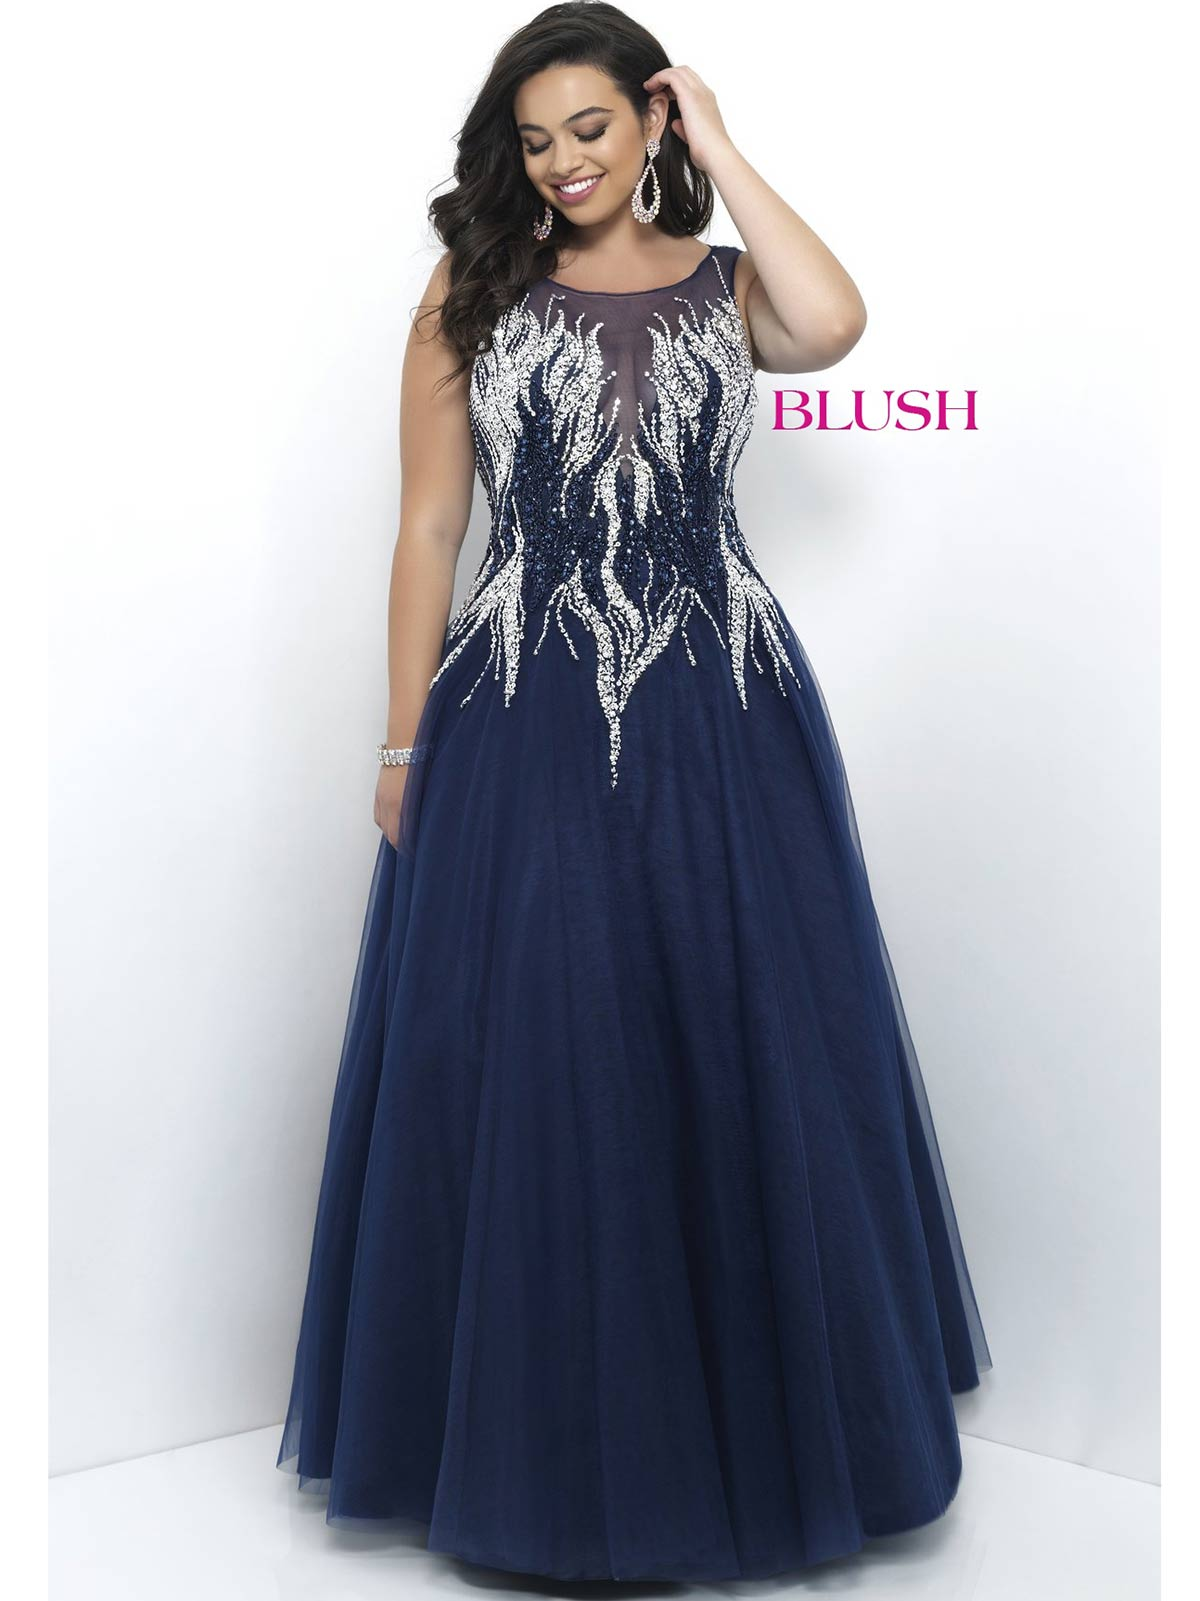 Plus Size Ball Gown Prom Dresses - Plus Size Dresses